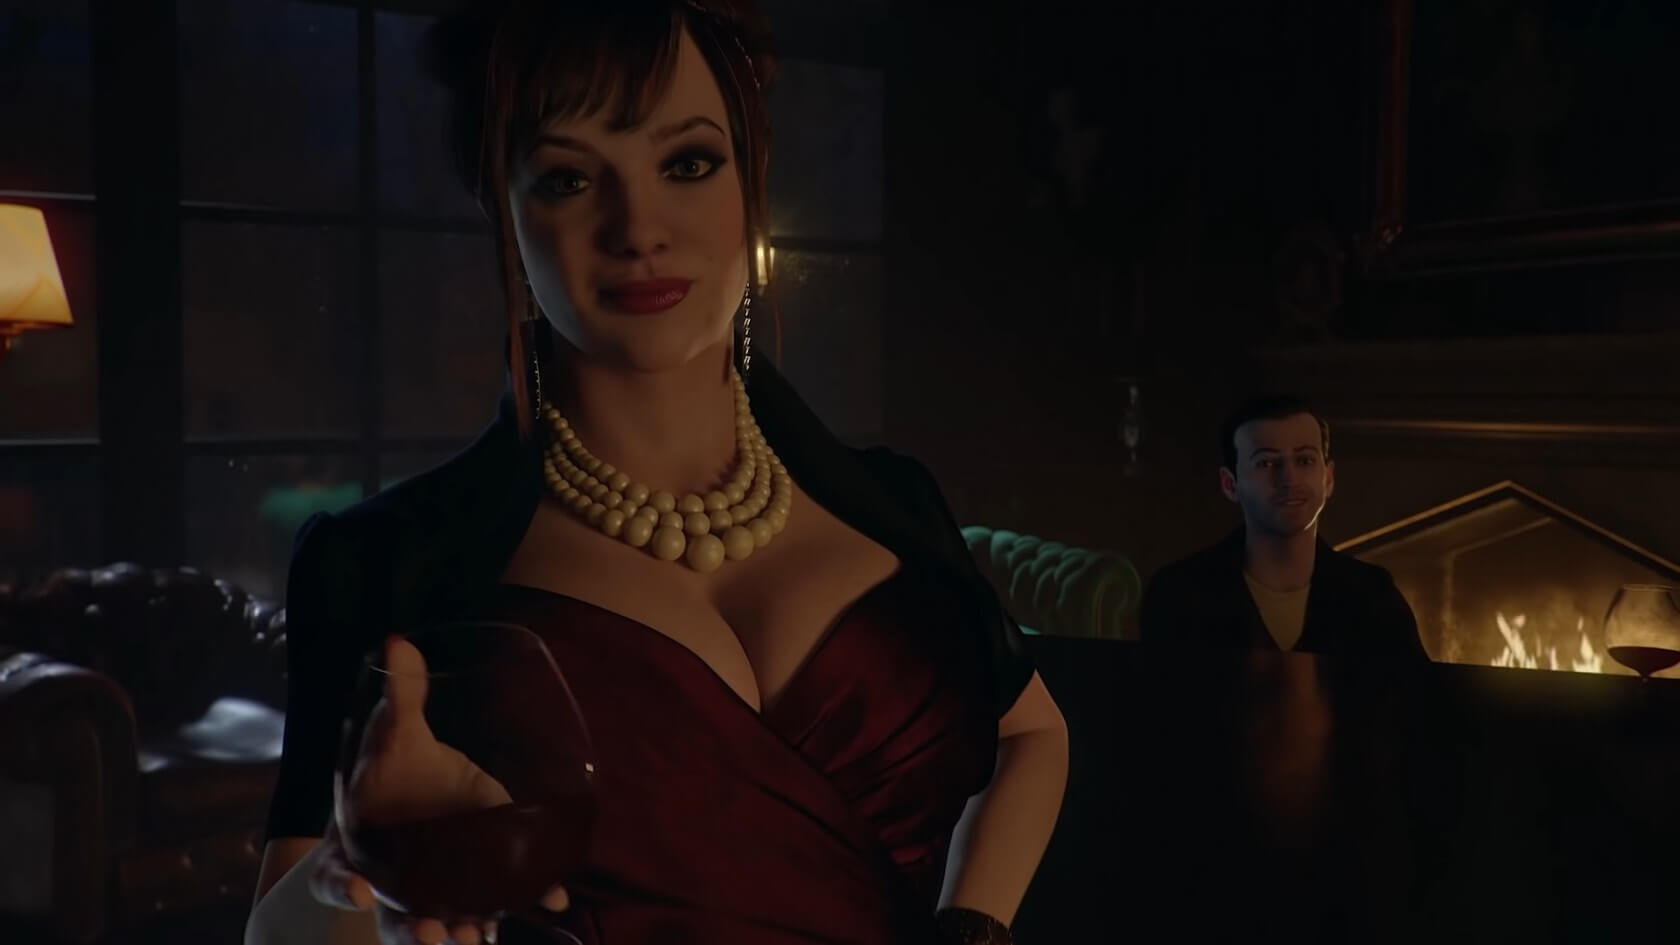 Vampire The Masquerade Bloodlines 1920x1080: Bloodlines 2 From Hardsuit Labs